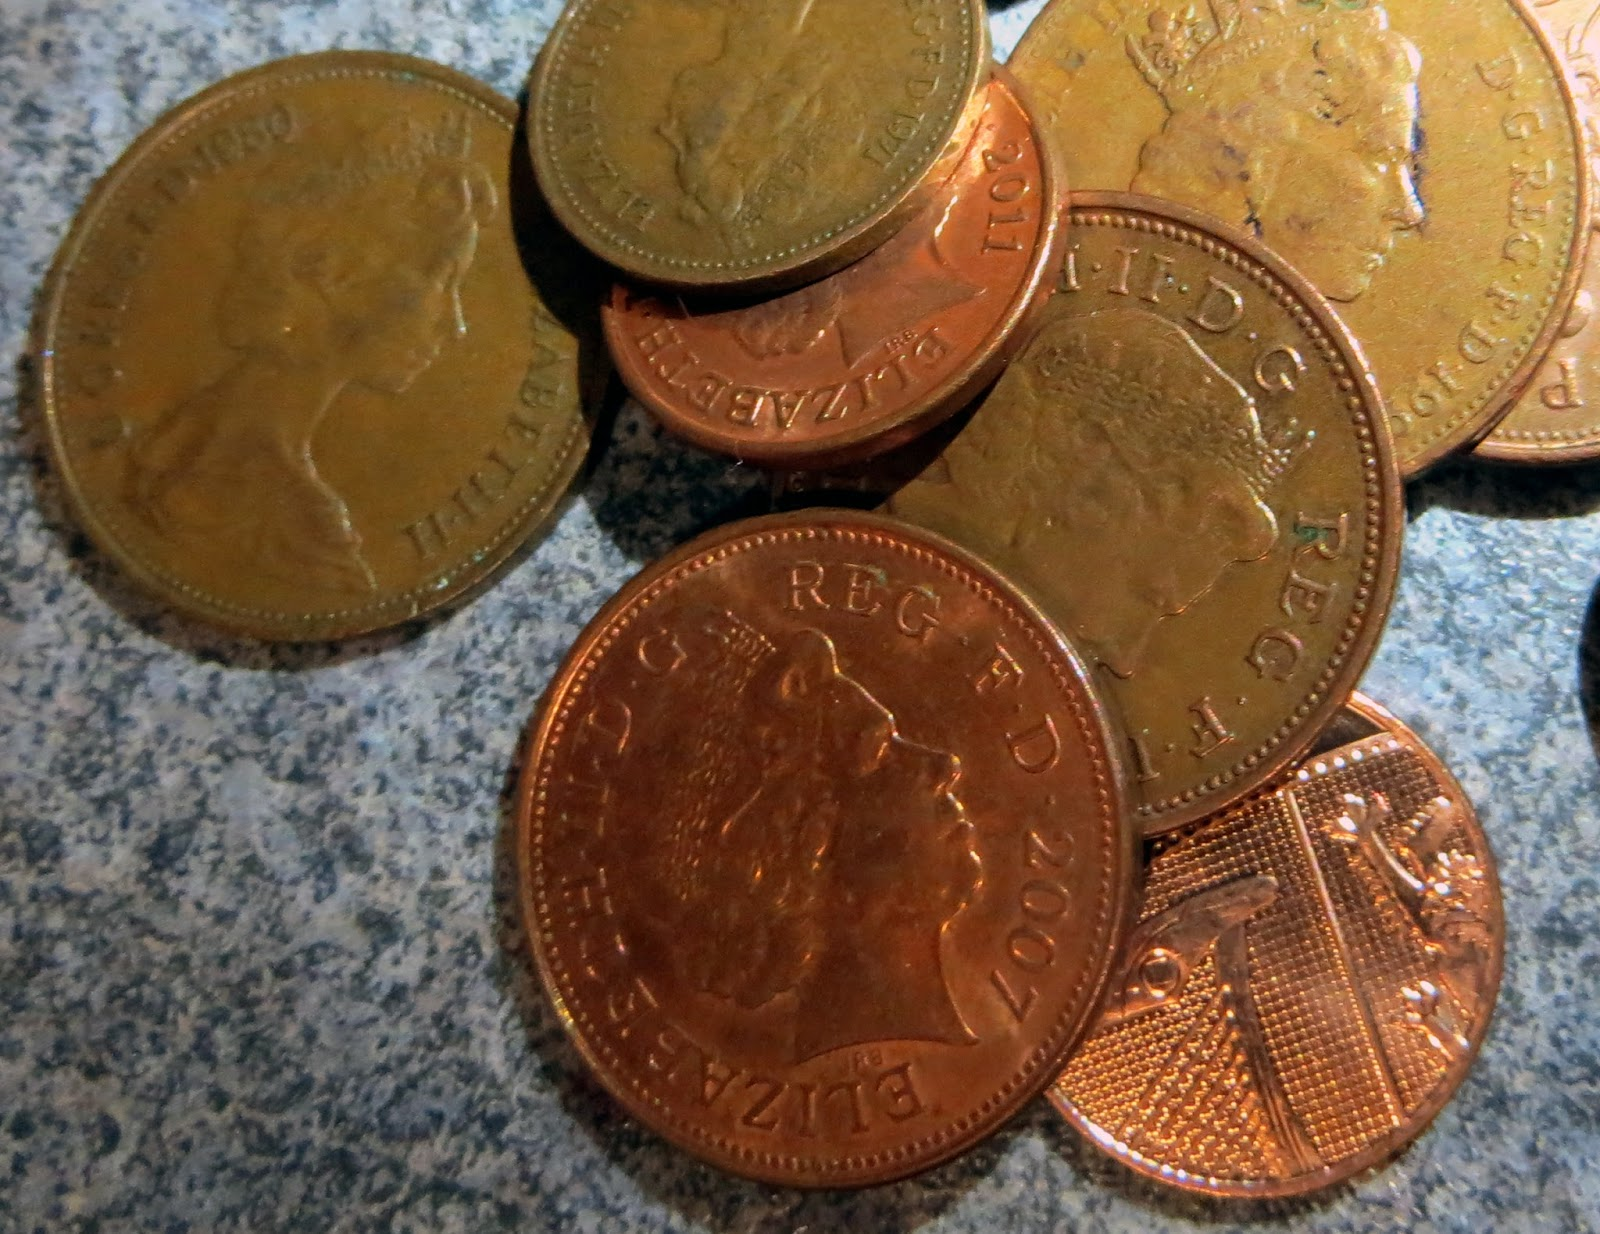 coins, british coins, how to save for travelling, how to save for traveling, backpacking, travel, vacation, gap year, sabbatical, quit job and travel, money worries, budgeting, loans, debt,